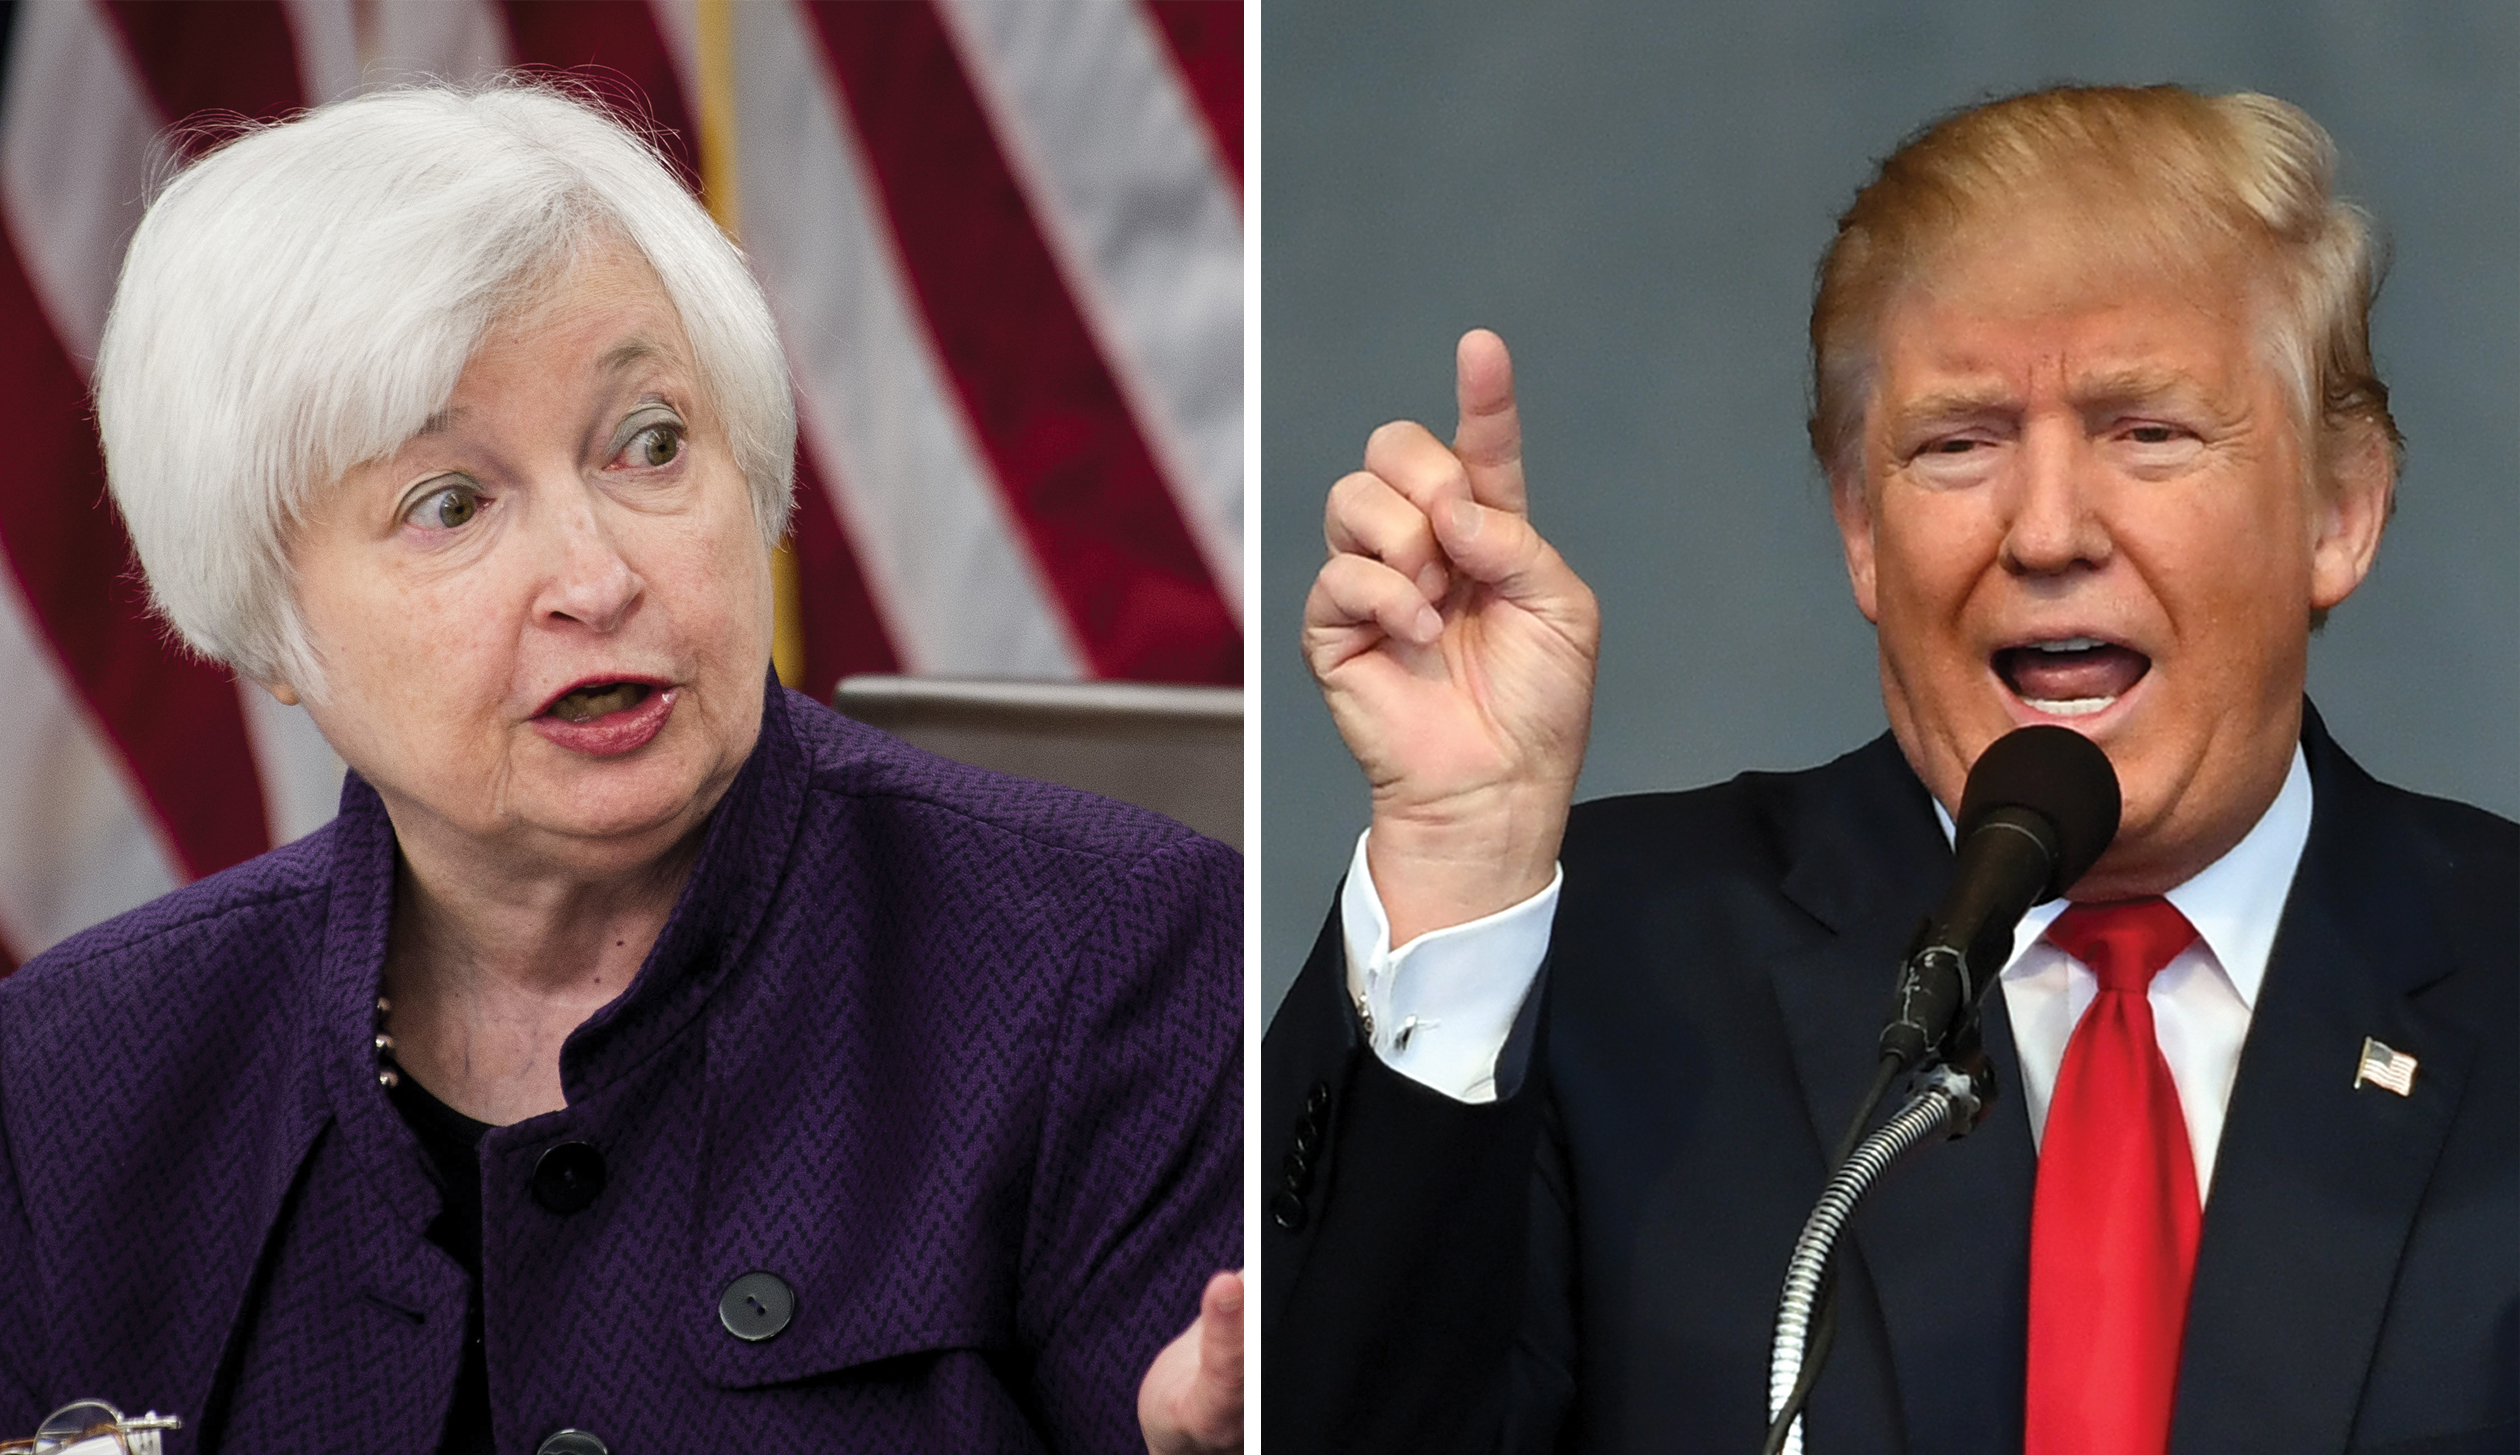 High interest rates could disrupt Donald Trump's economic agenda, regardless of what the Fed does under Janet Yellen.